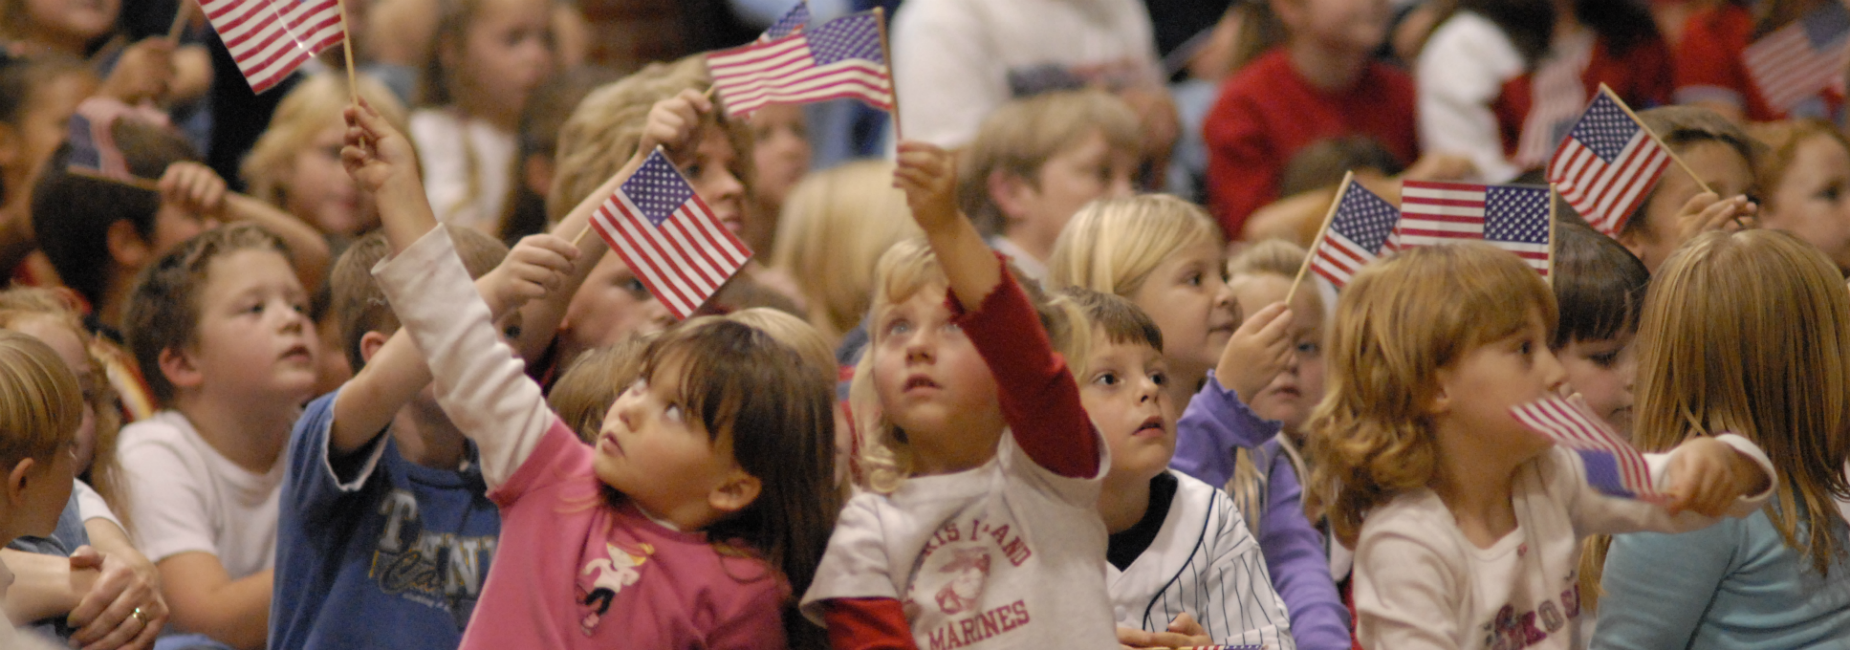 Chilhowie Elementary School students waving small American flags.